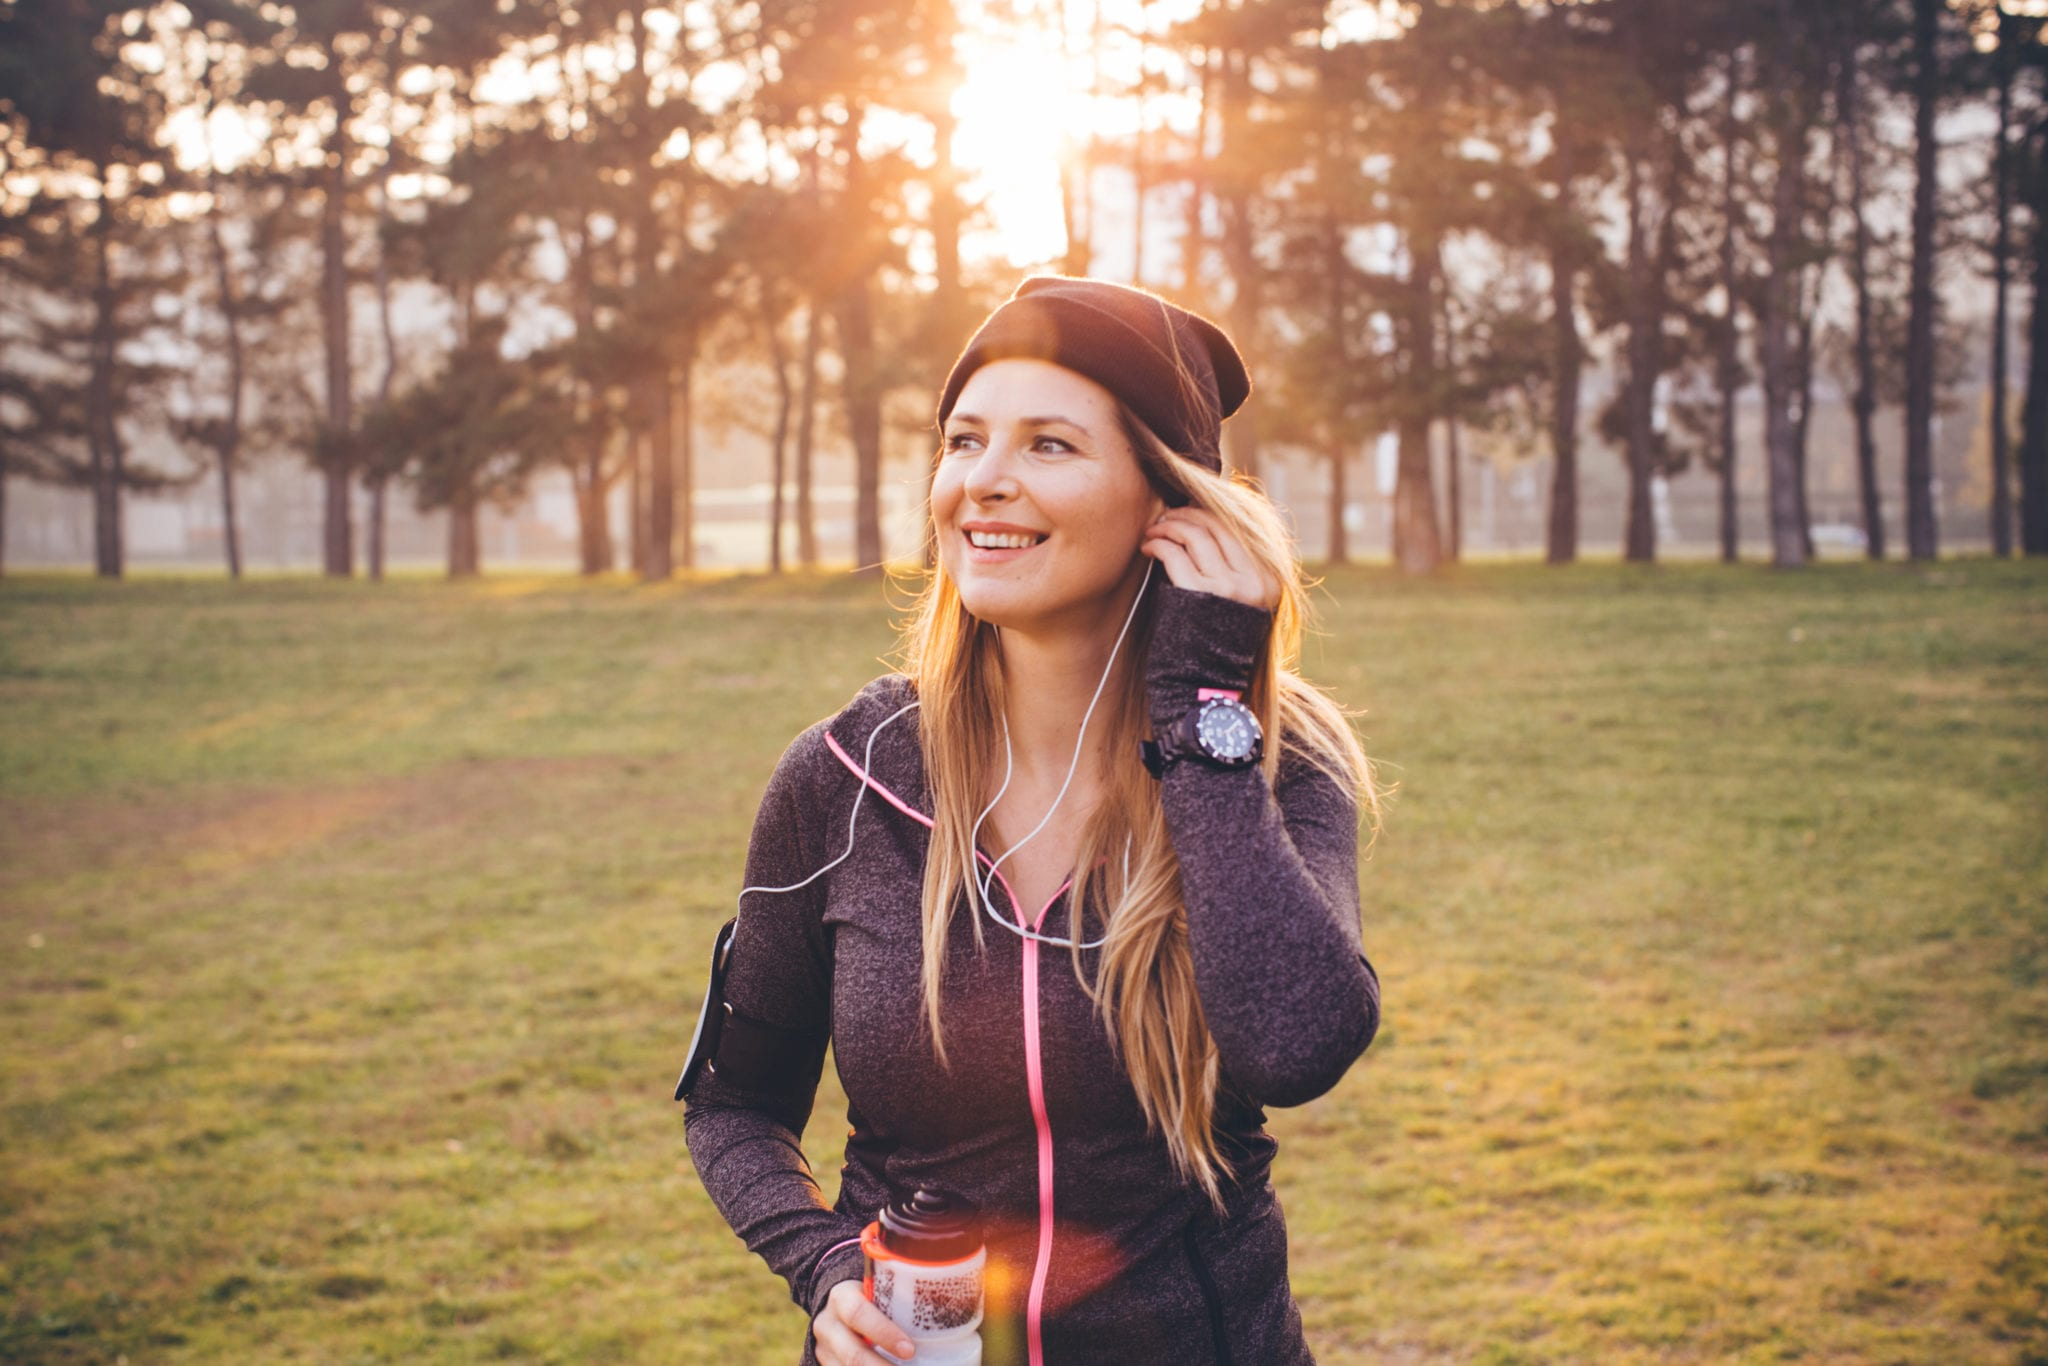 Young woman jogging outside in sunny autumn forest. She took a break to set up smartphone to monitor her progress or set up music and drink water. The sun is shining in the background .